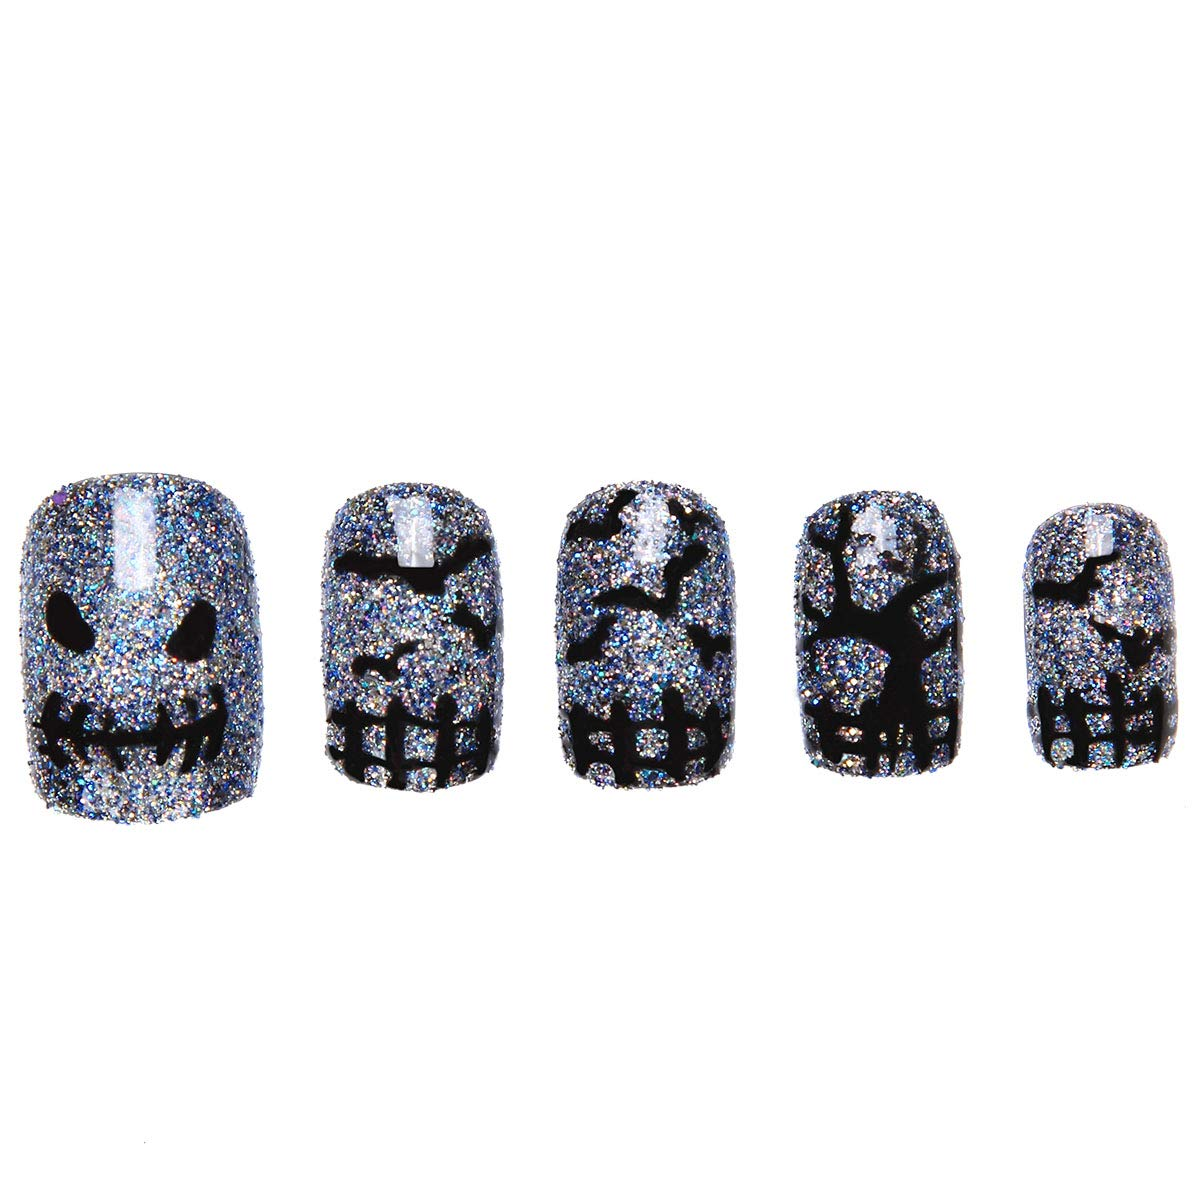 Amazon.com : 24 Pcs of 12 Different Sizes Handmade Dark Halloween Finger Fake Nail for Halloween : Beauty